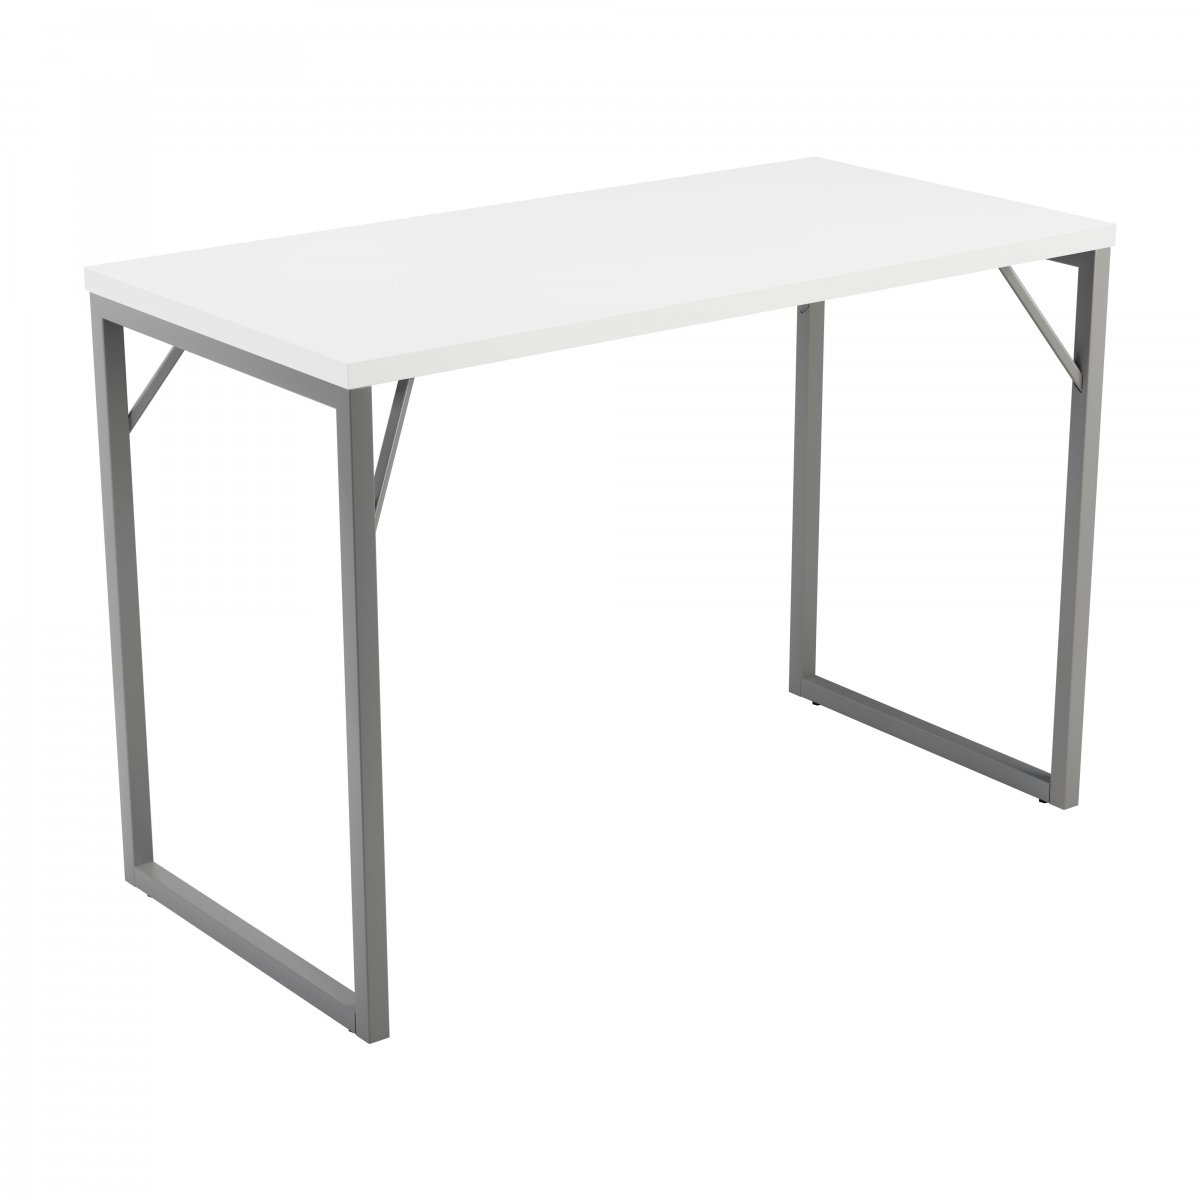 Picnic Bench High Table Silver 36mm White Top